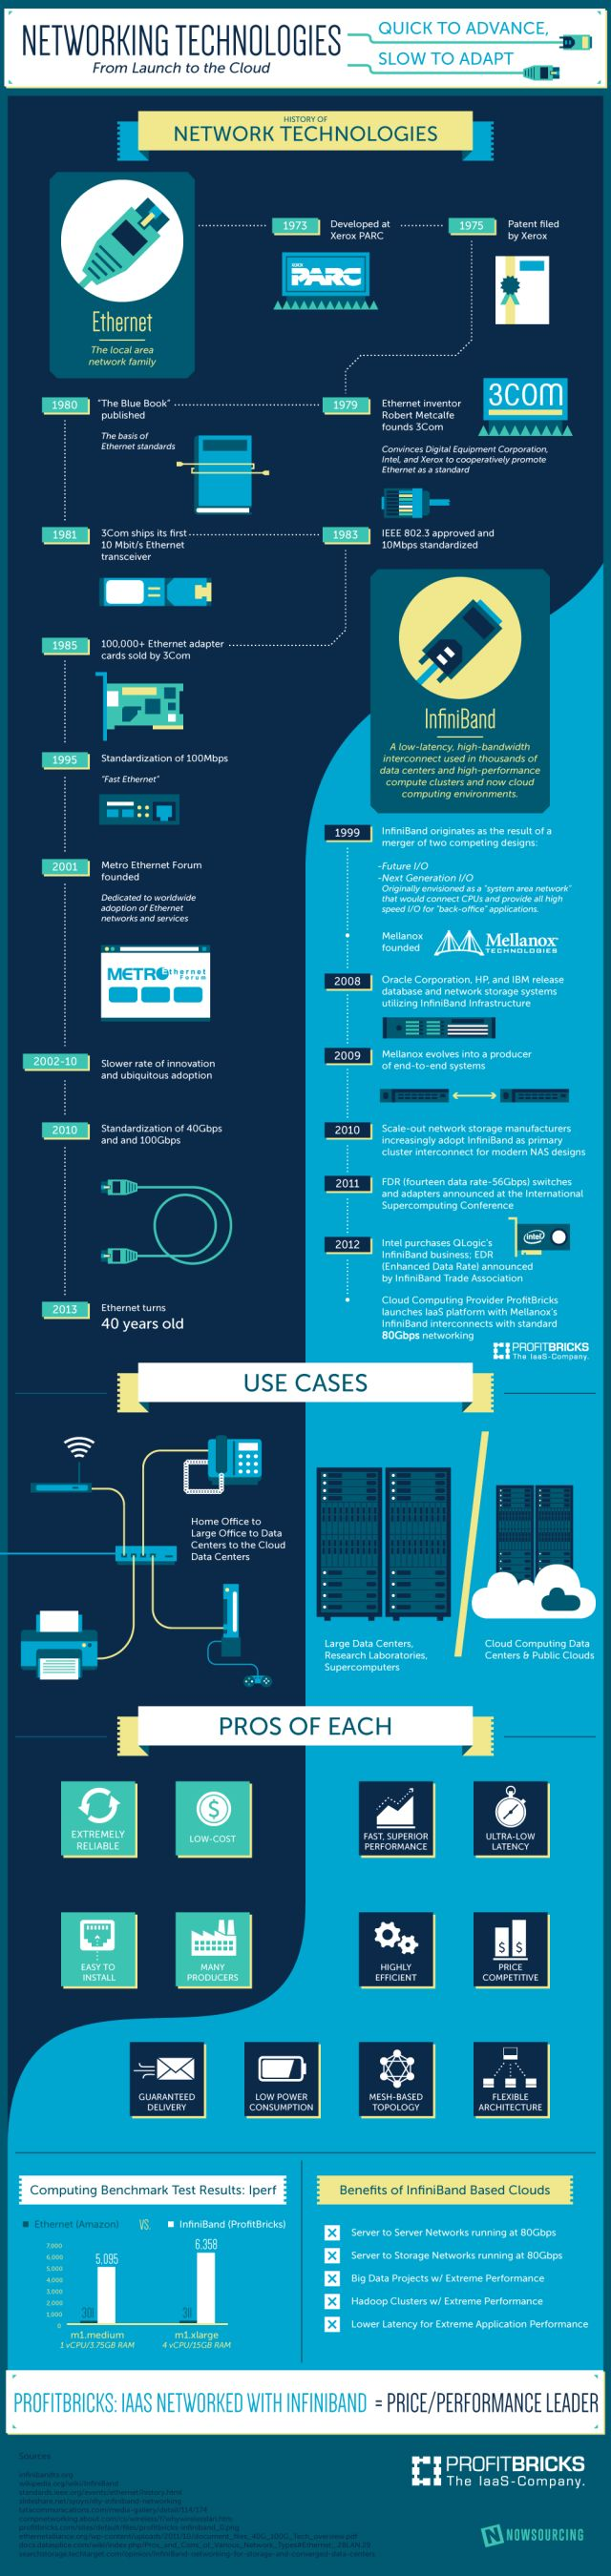 Networking technologies #infografia #infographic